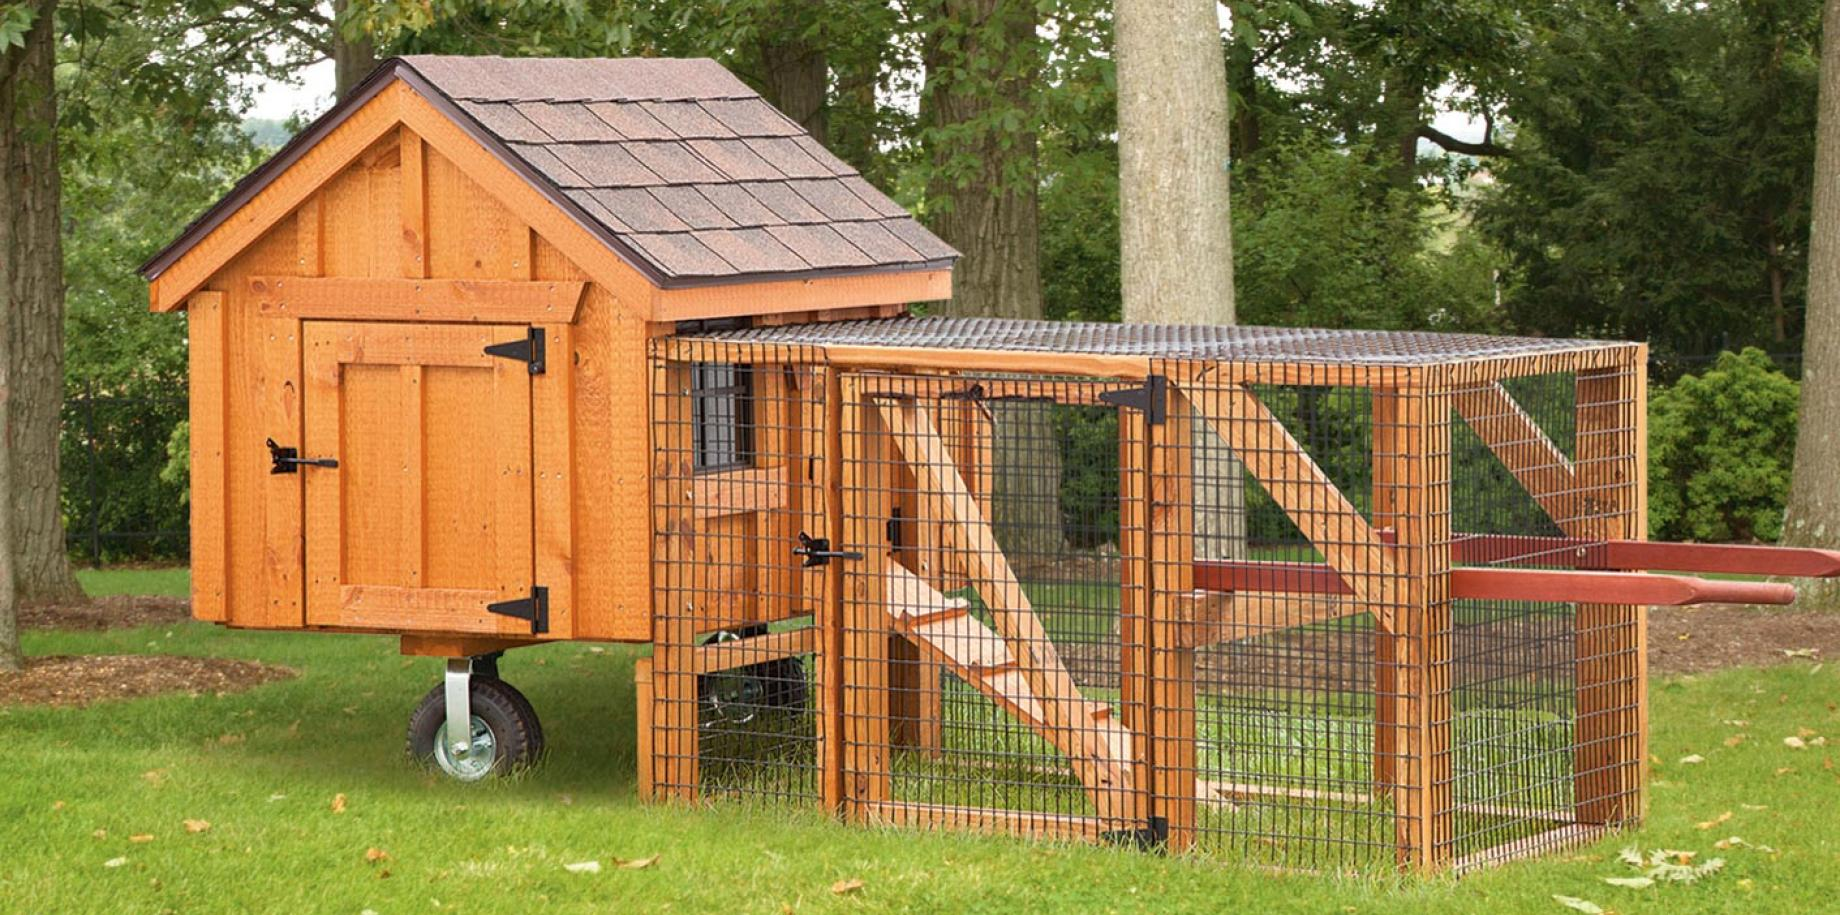 3'x3' A frame tractor style chicken house